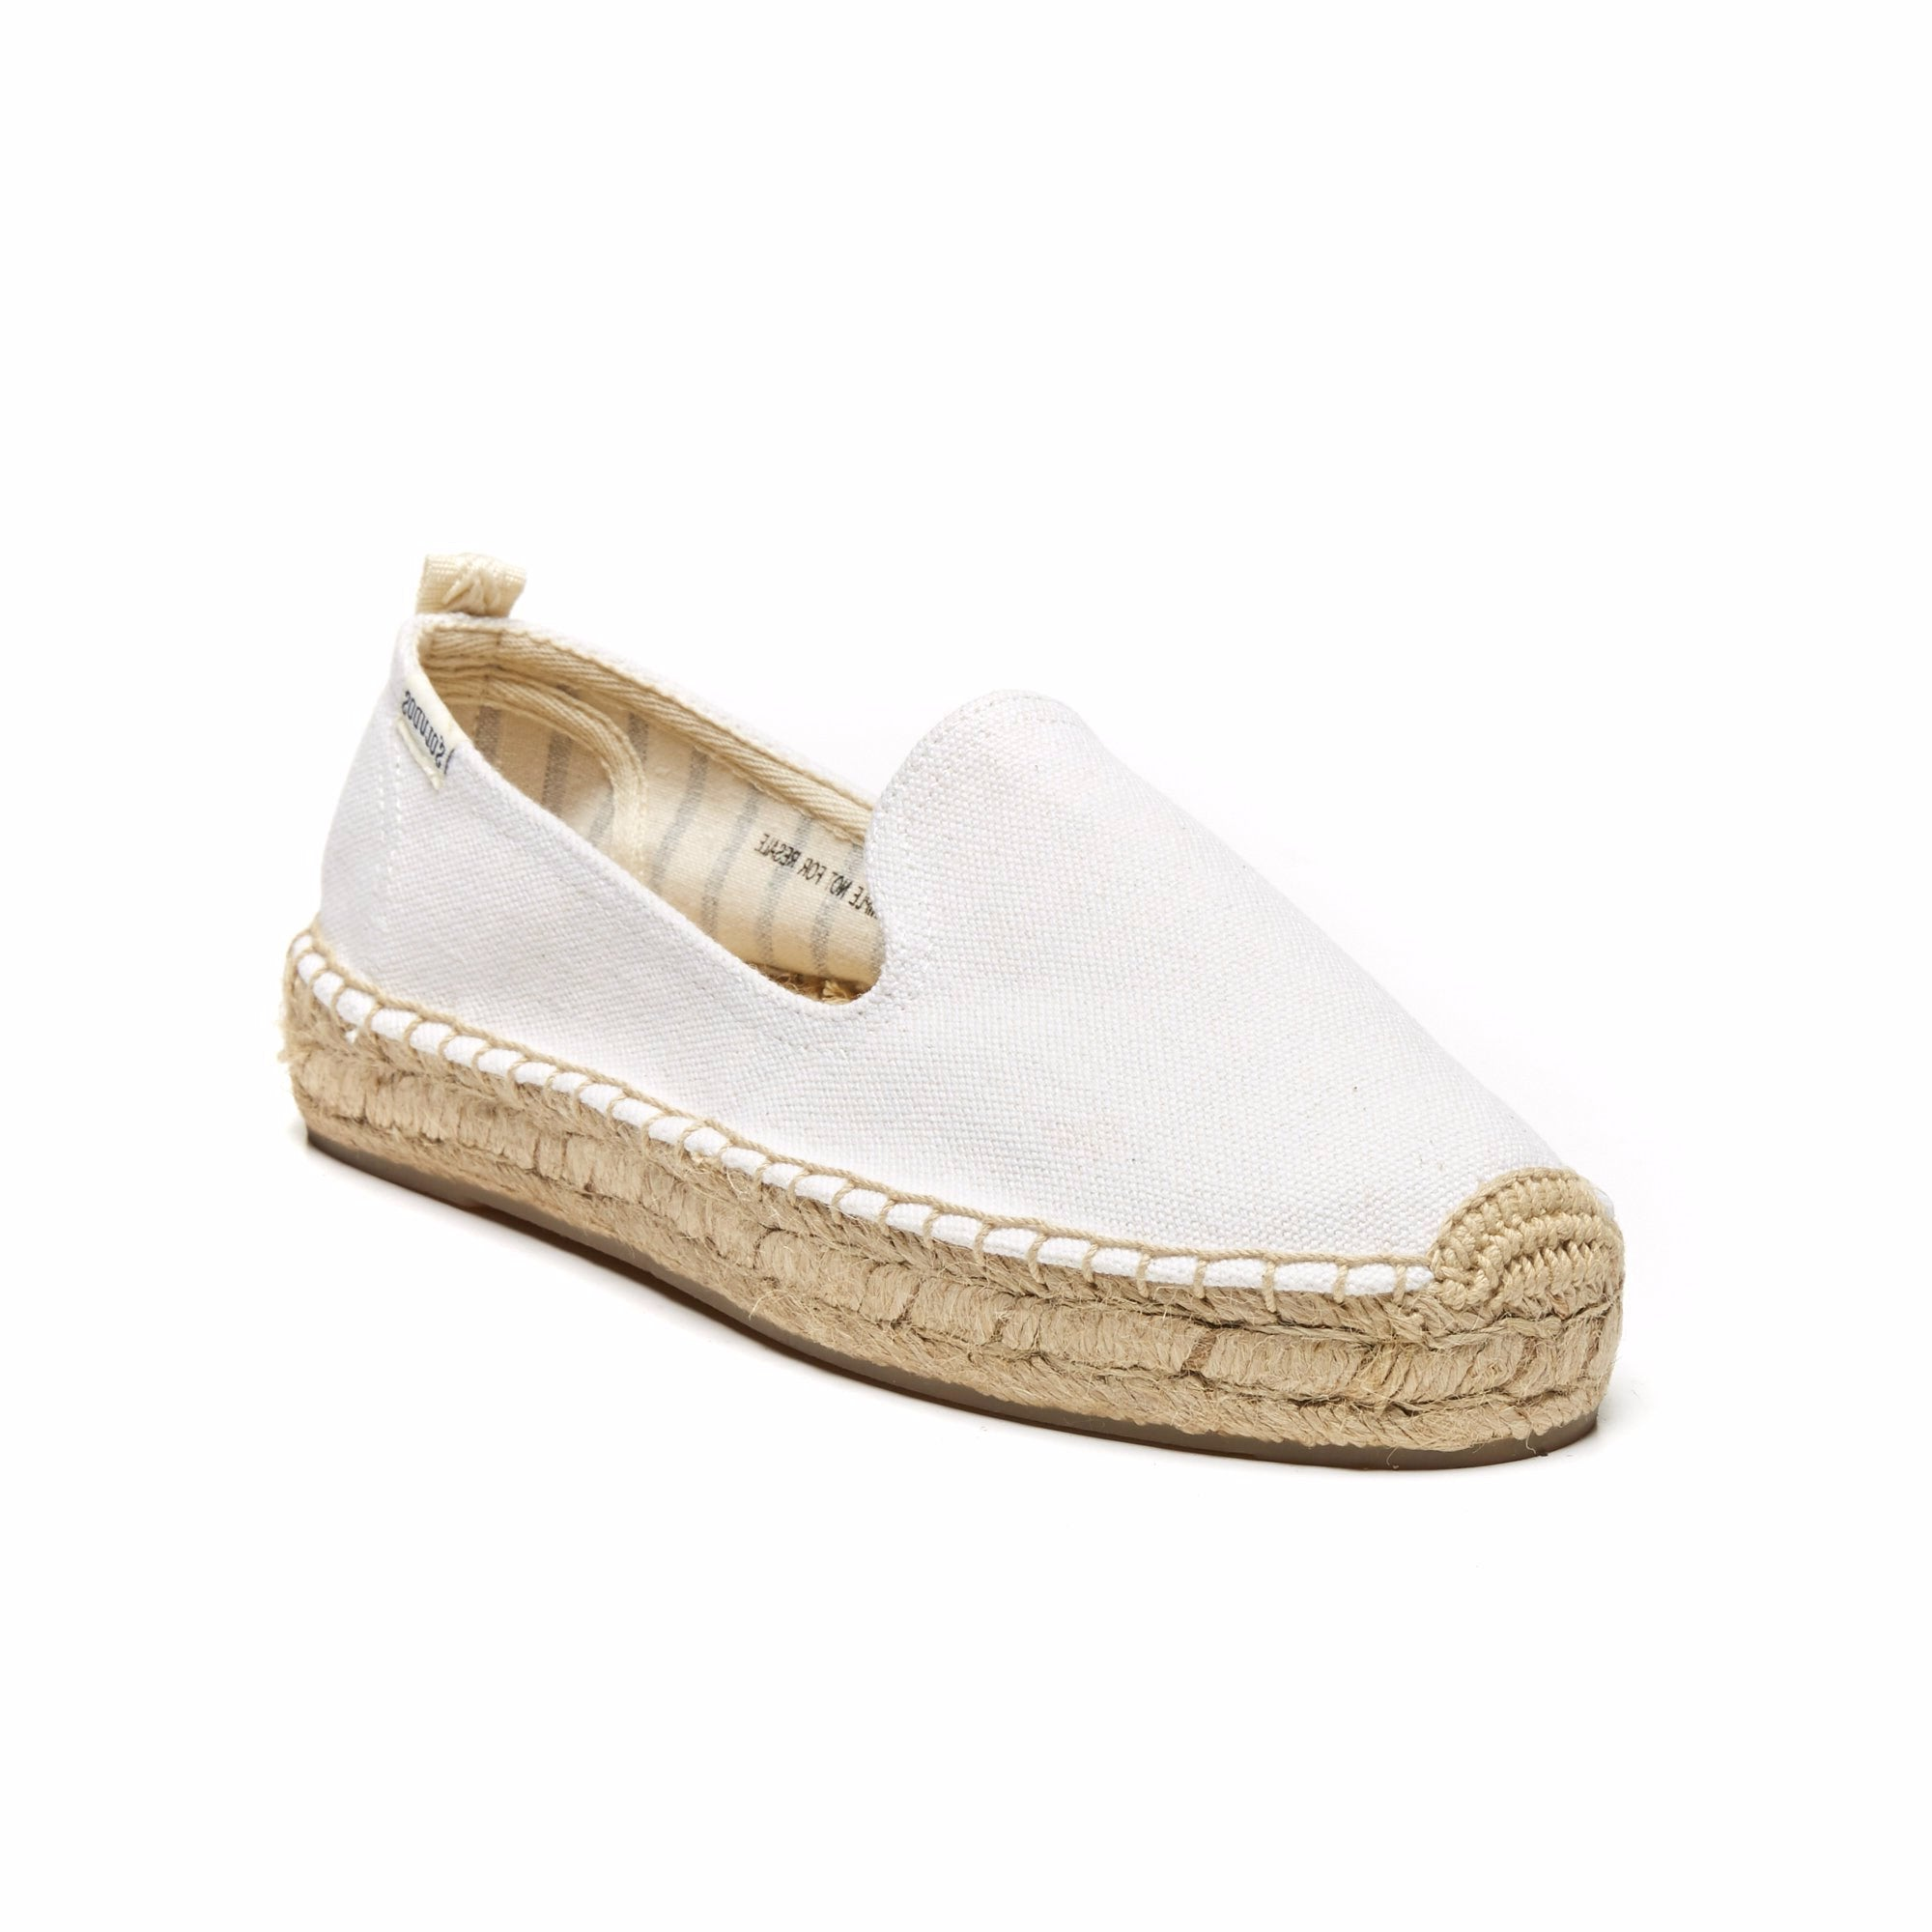 Platform Smoking Slipper - White